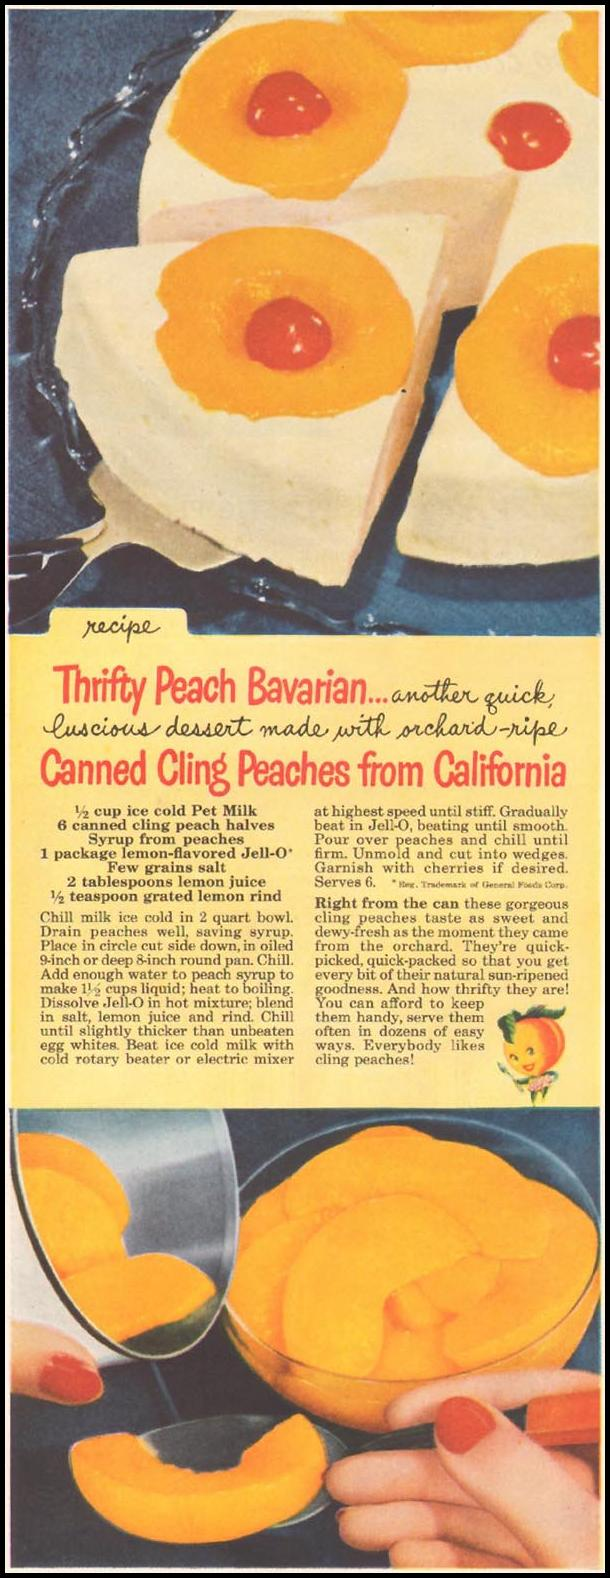 CANNED CLING PEACHES FROM CALIFORNIA LADIES' HOME JOURNAL 11/01/1950 p. 232